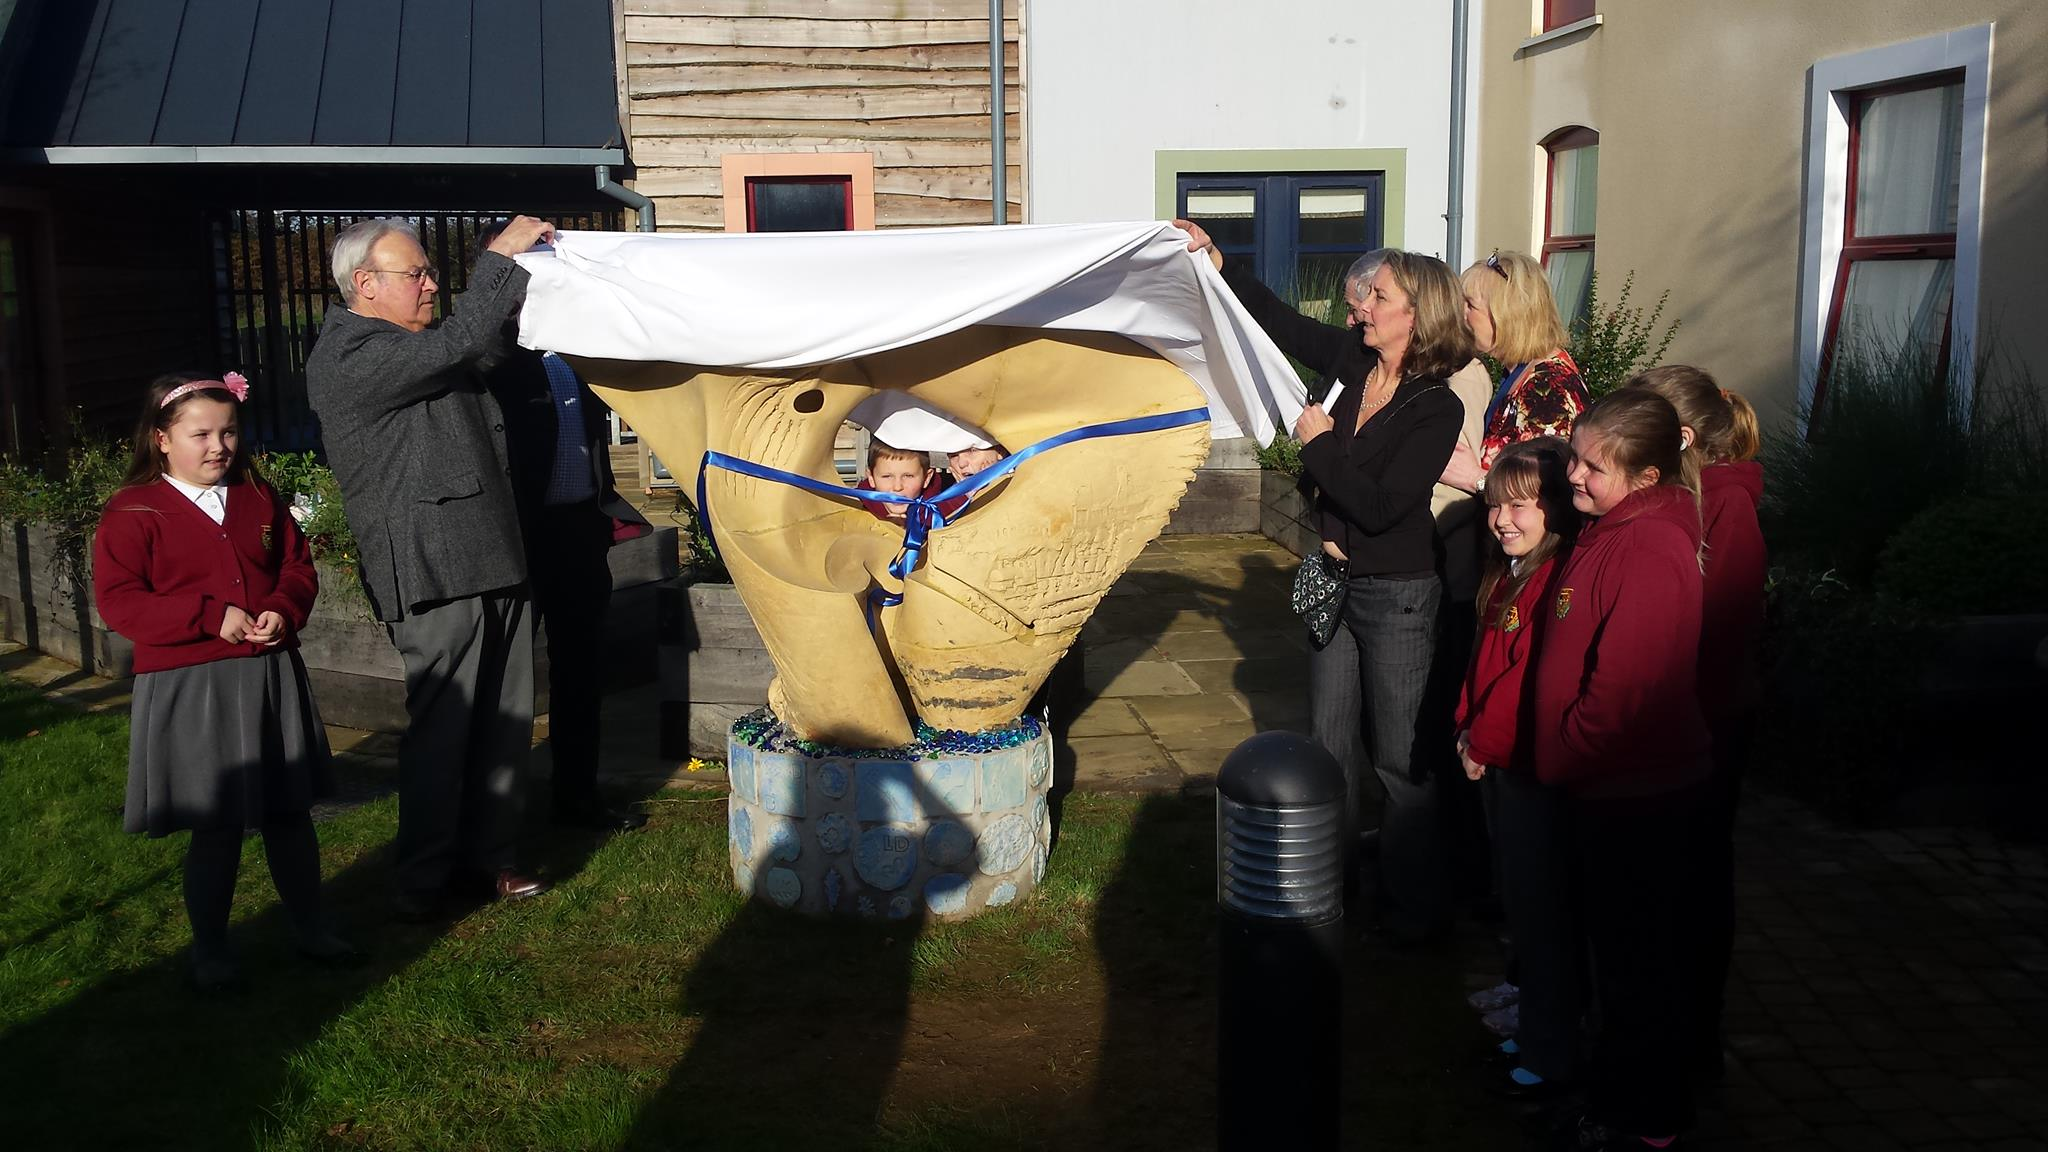 The Celebration Day at Gwalia Mynydd Mawr, 5 November 2014